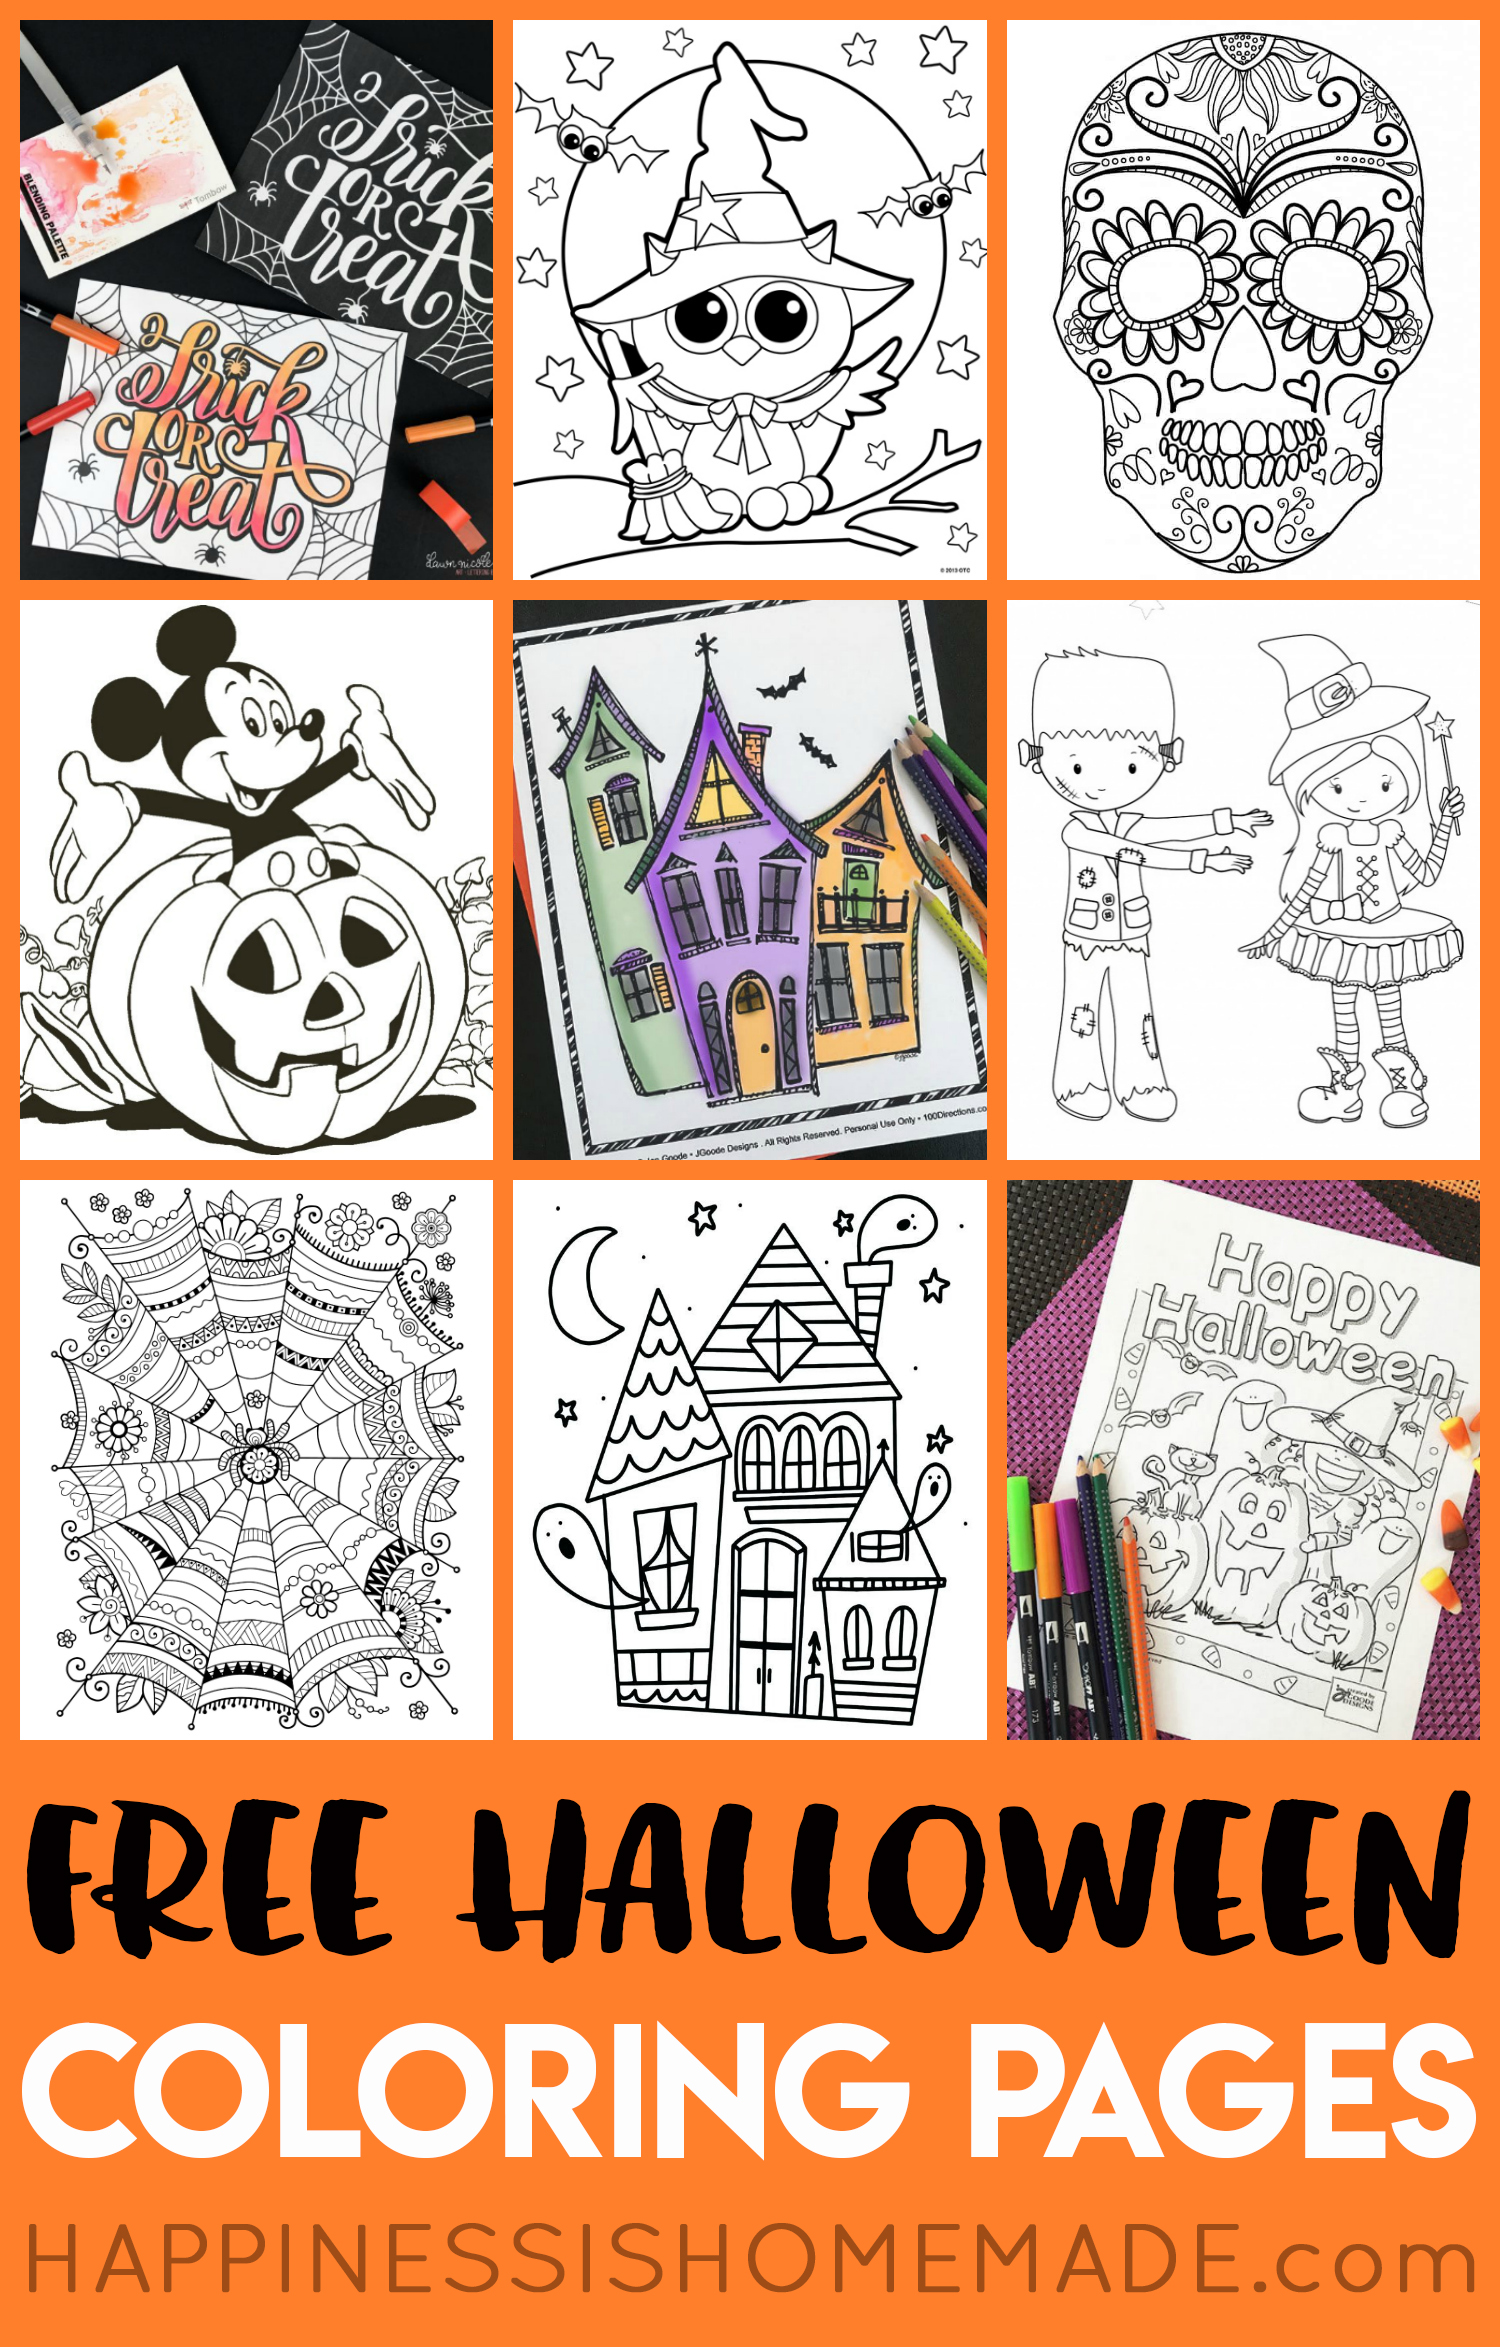 Pin these halloween coloring pages for later